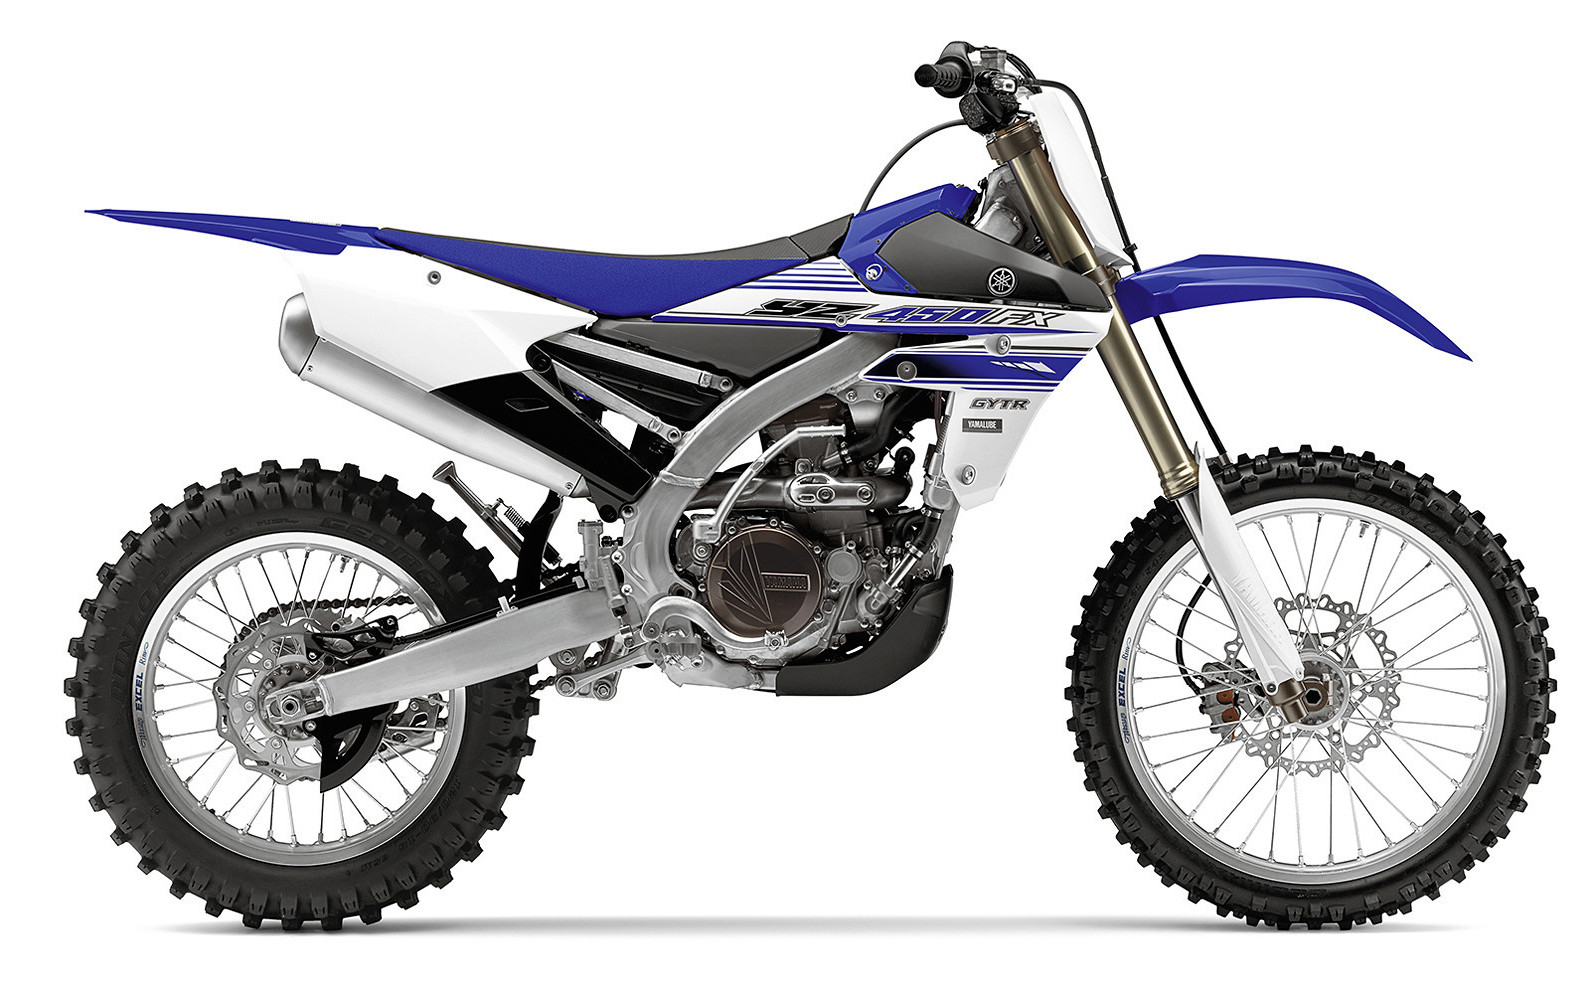 2016 yamaha yz450fx reviews comparisons specs. Black Bedroom Furniture Sets. Home Design Ideas